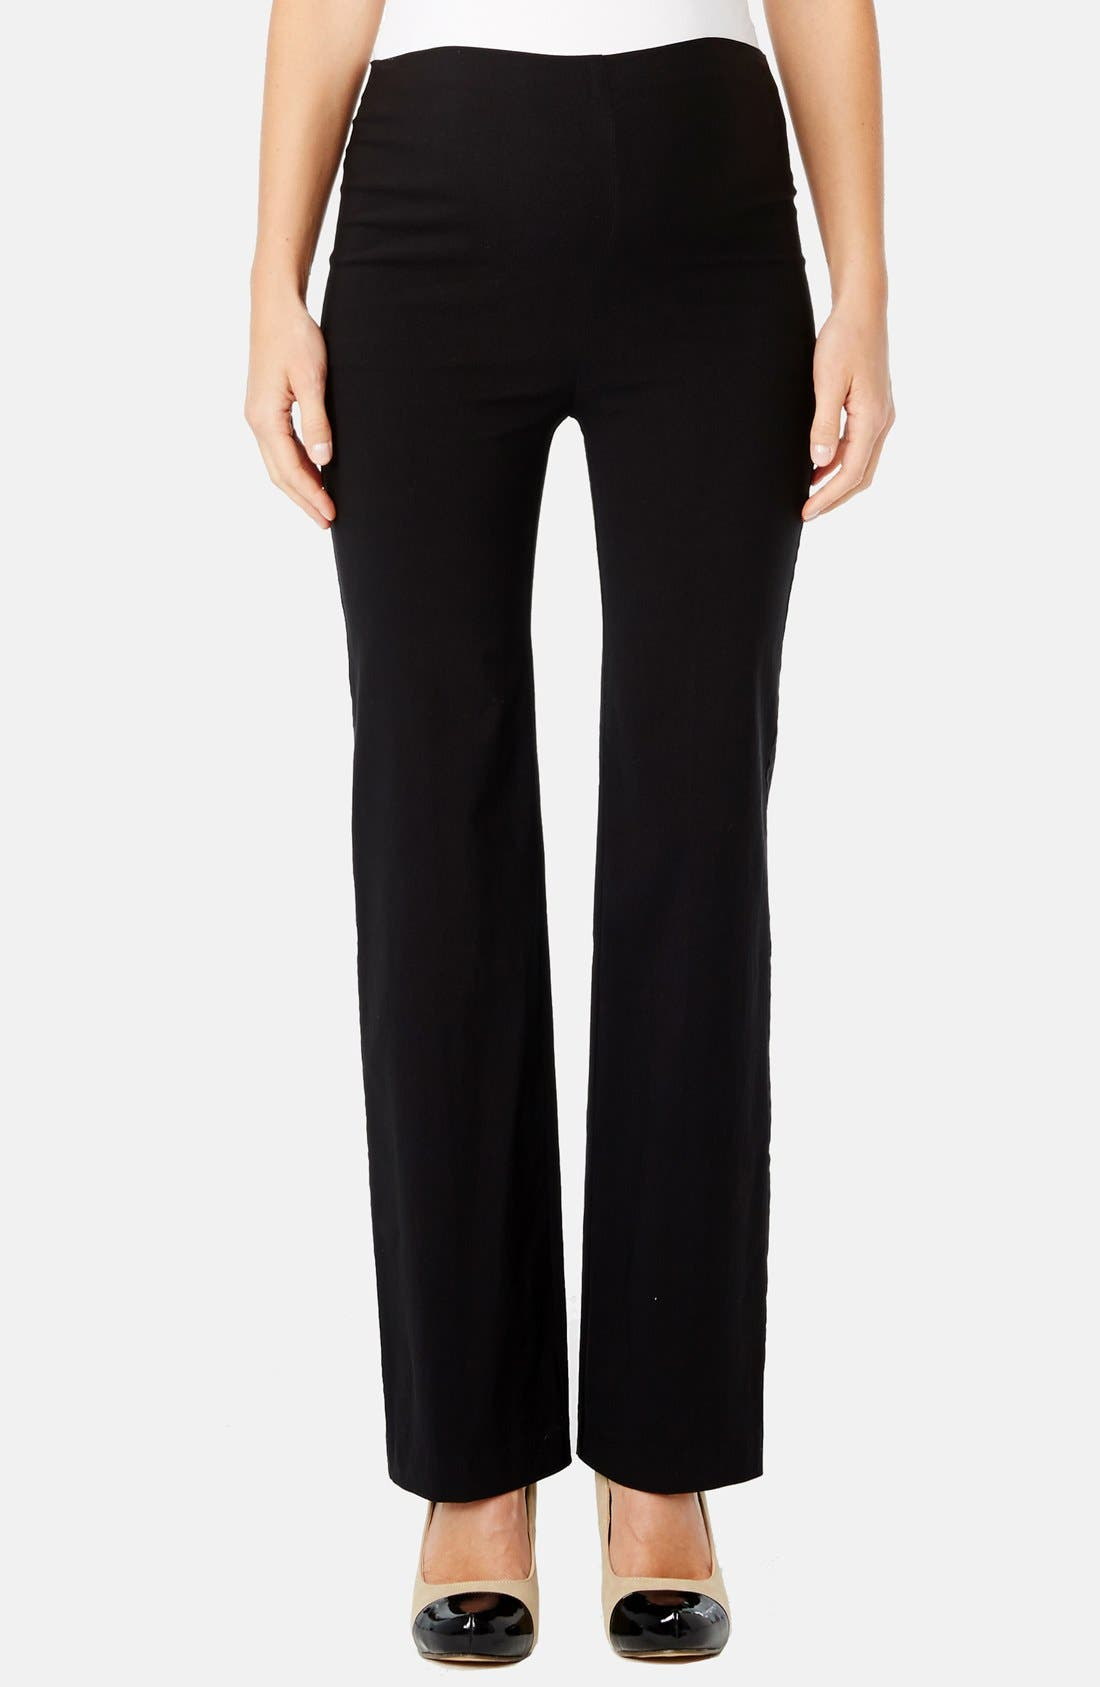 Main Image - Rosie Pope 'Pret' Maternity Trousers